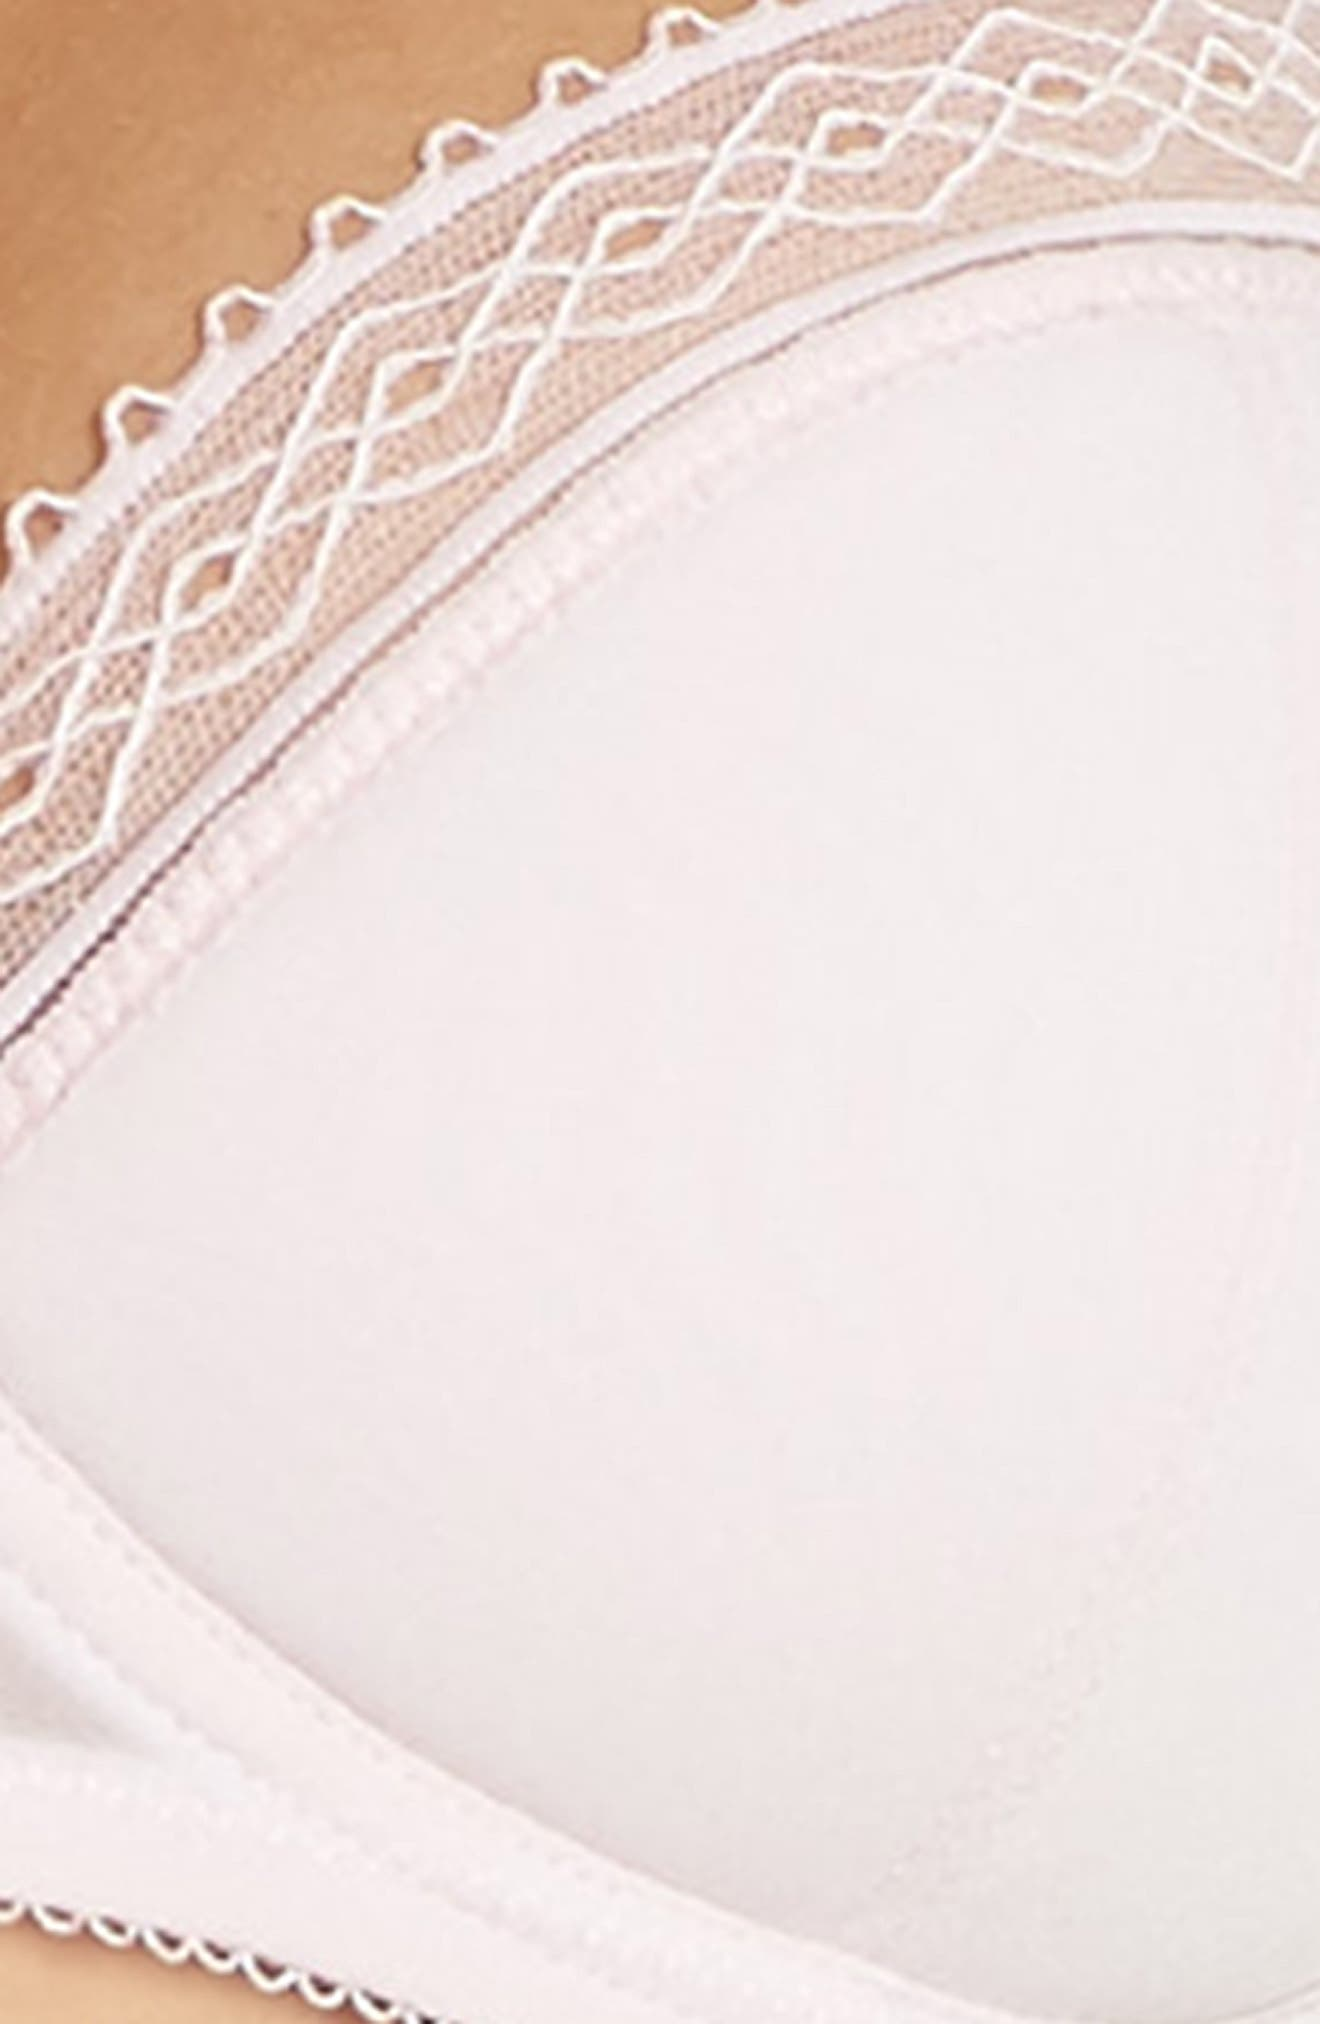 Tentation Douceur Padded Underwire Demi Bra,                             Alternate thumbnail 4, color,                             650